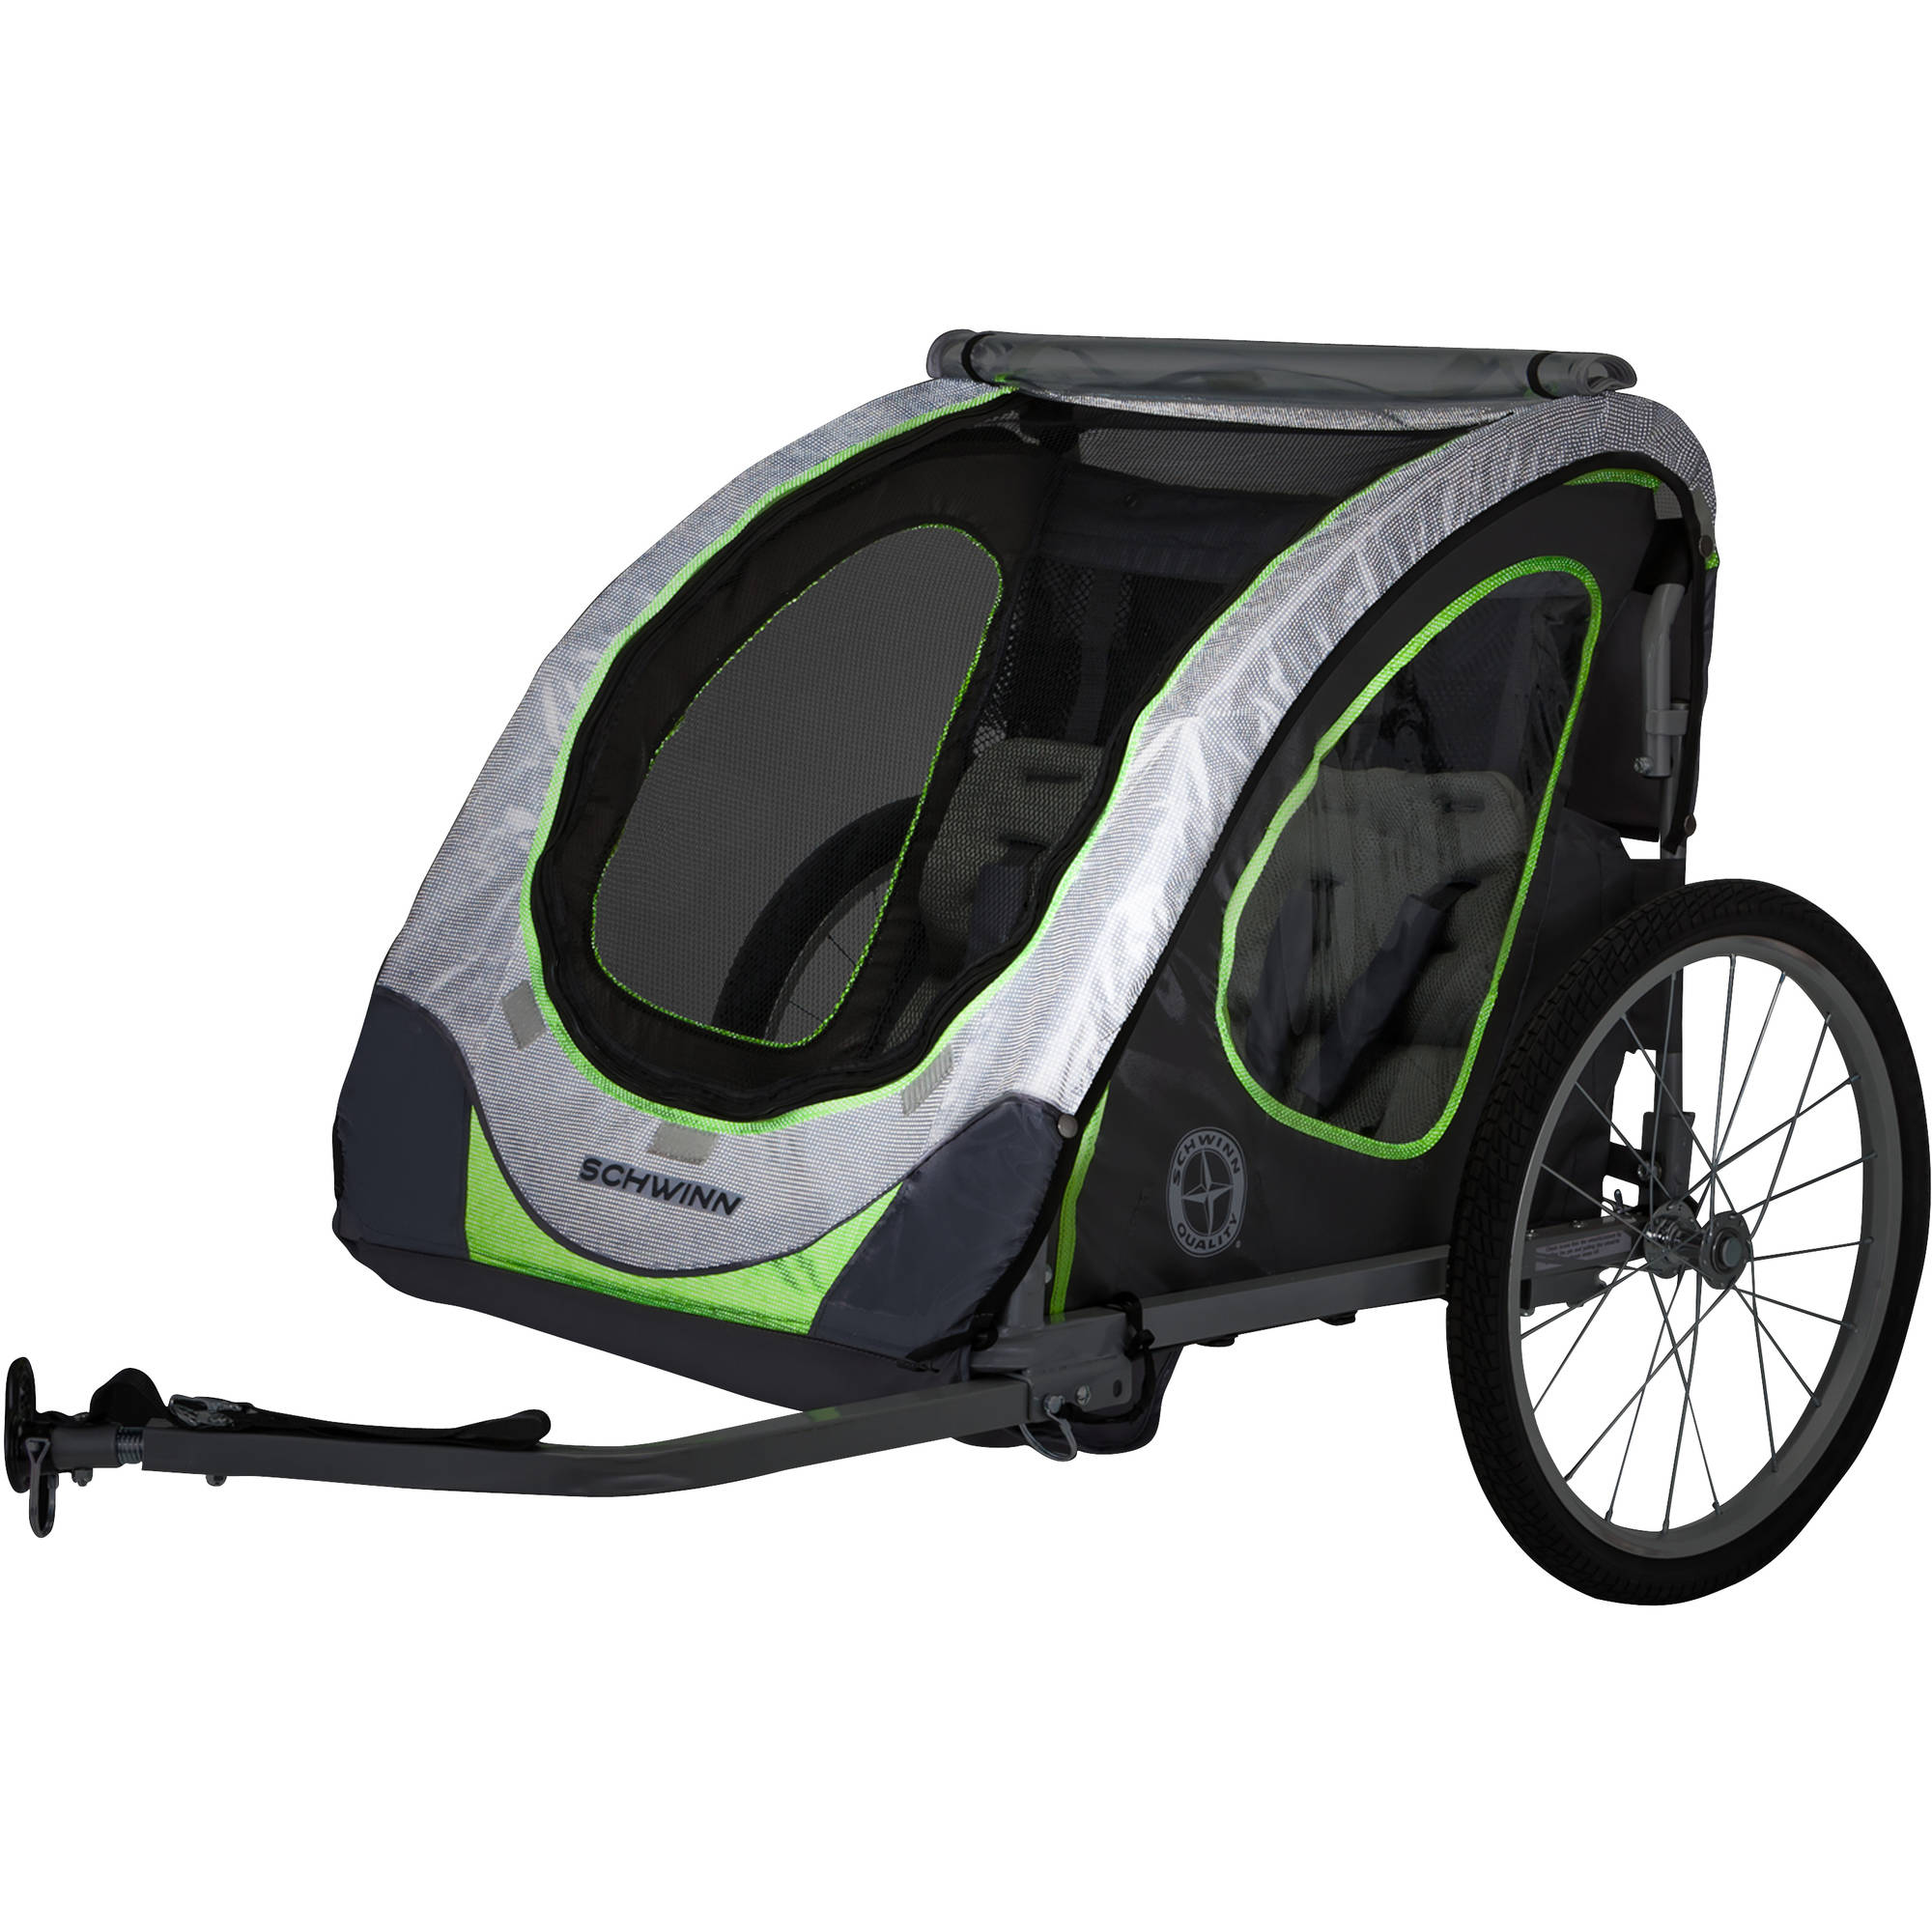 Schwinn Zap Double Child Reflective Trailer, Gray/Green